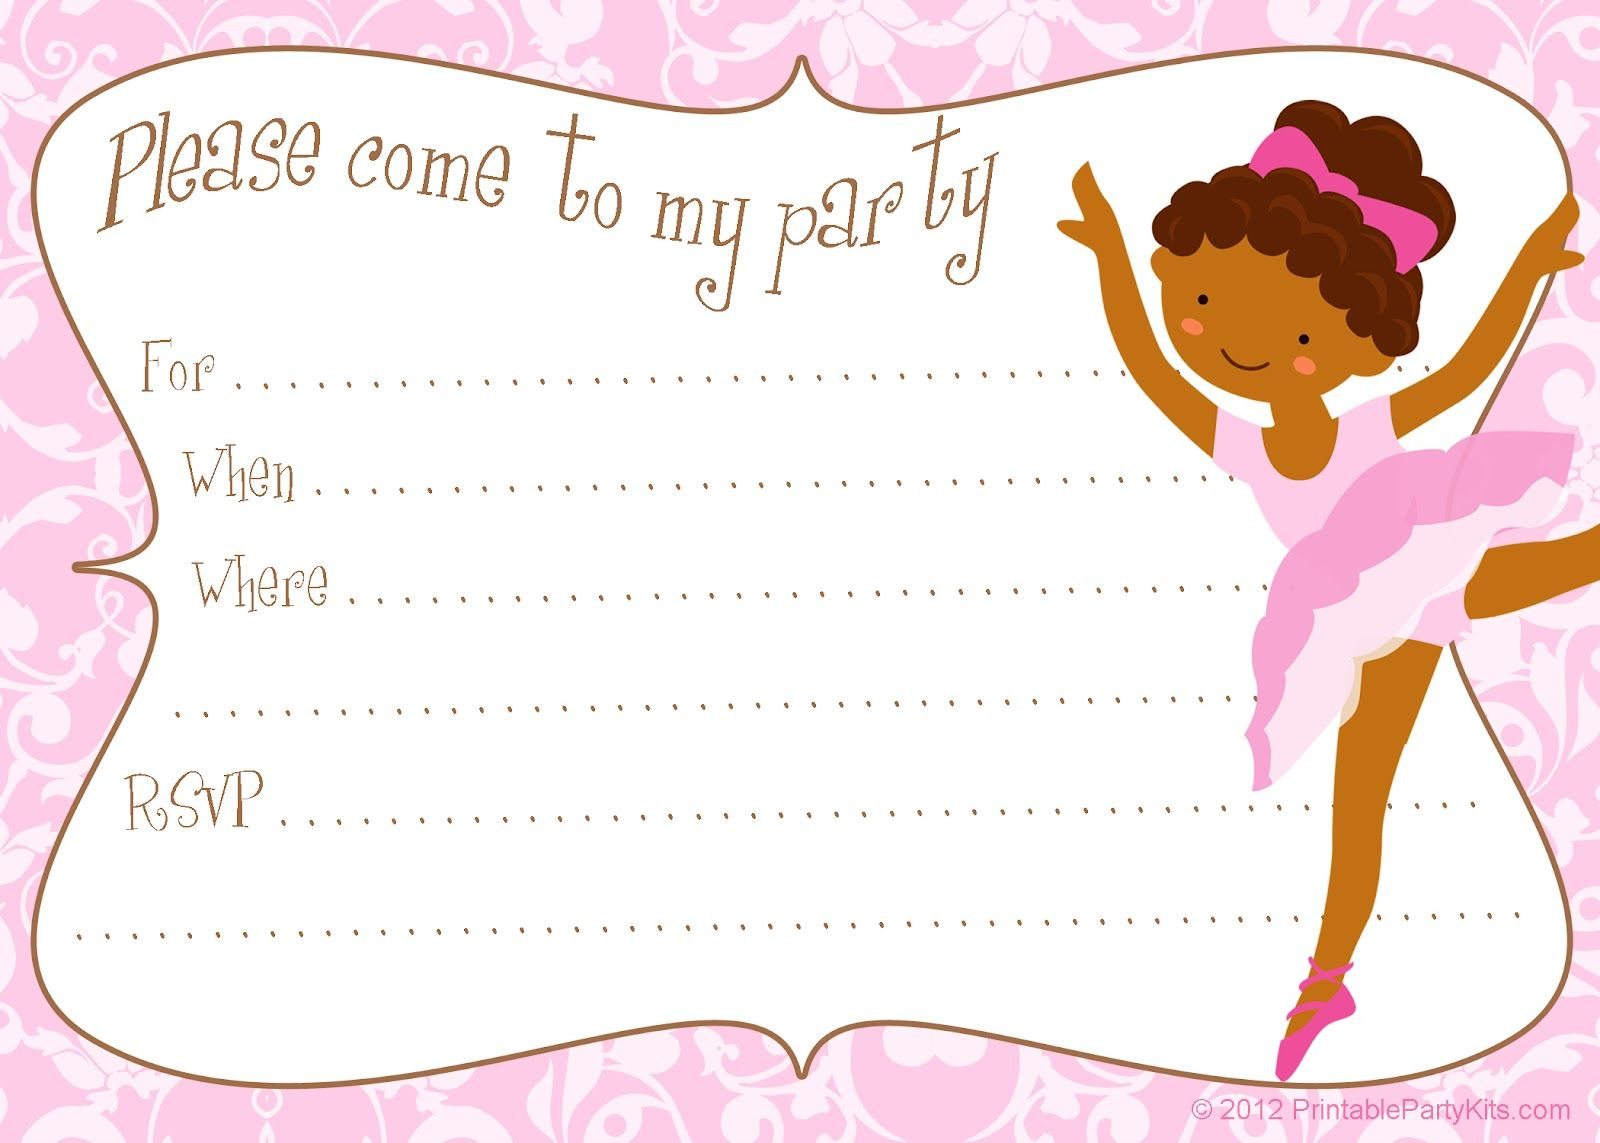 Free Printable Diy Ballerina Invitation Template | Party Printables - Free Printable Ballerina Birthday Invitations